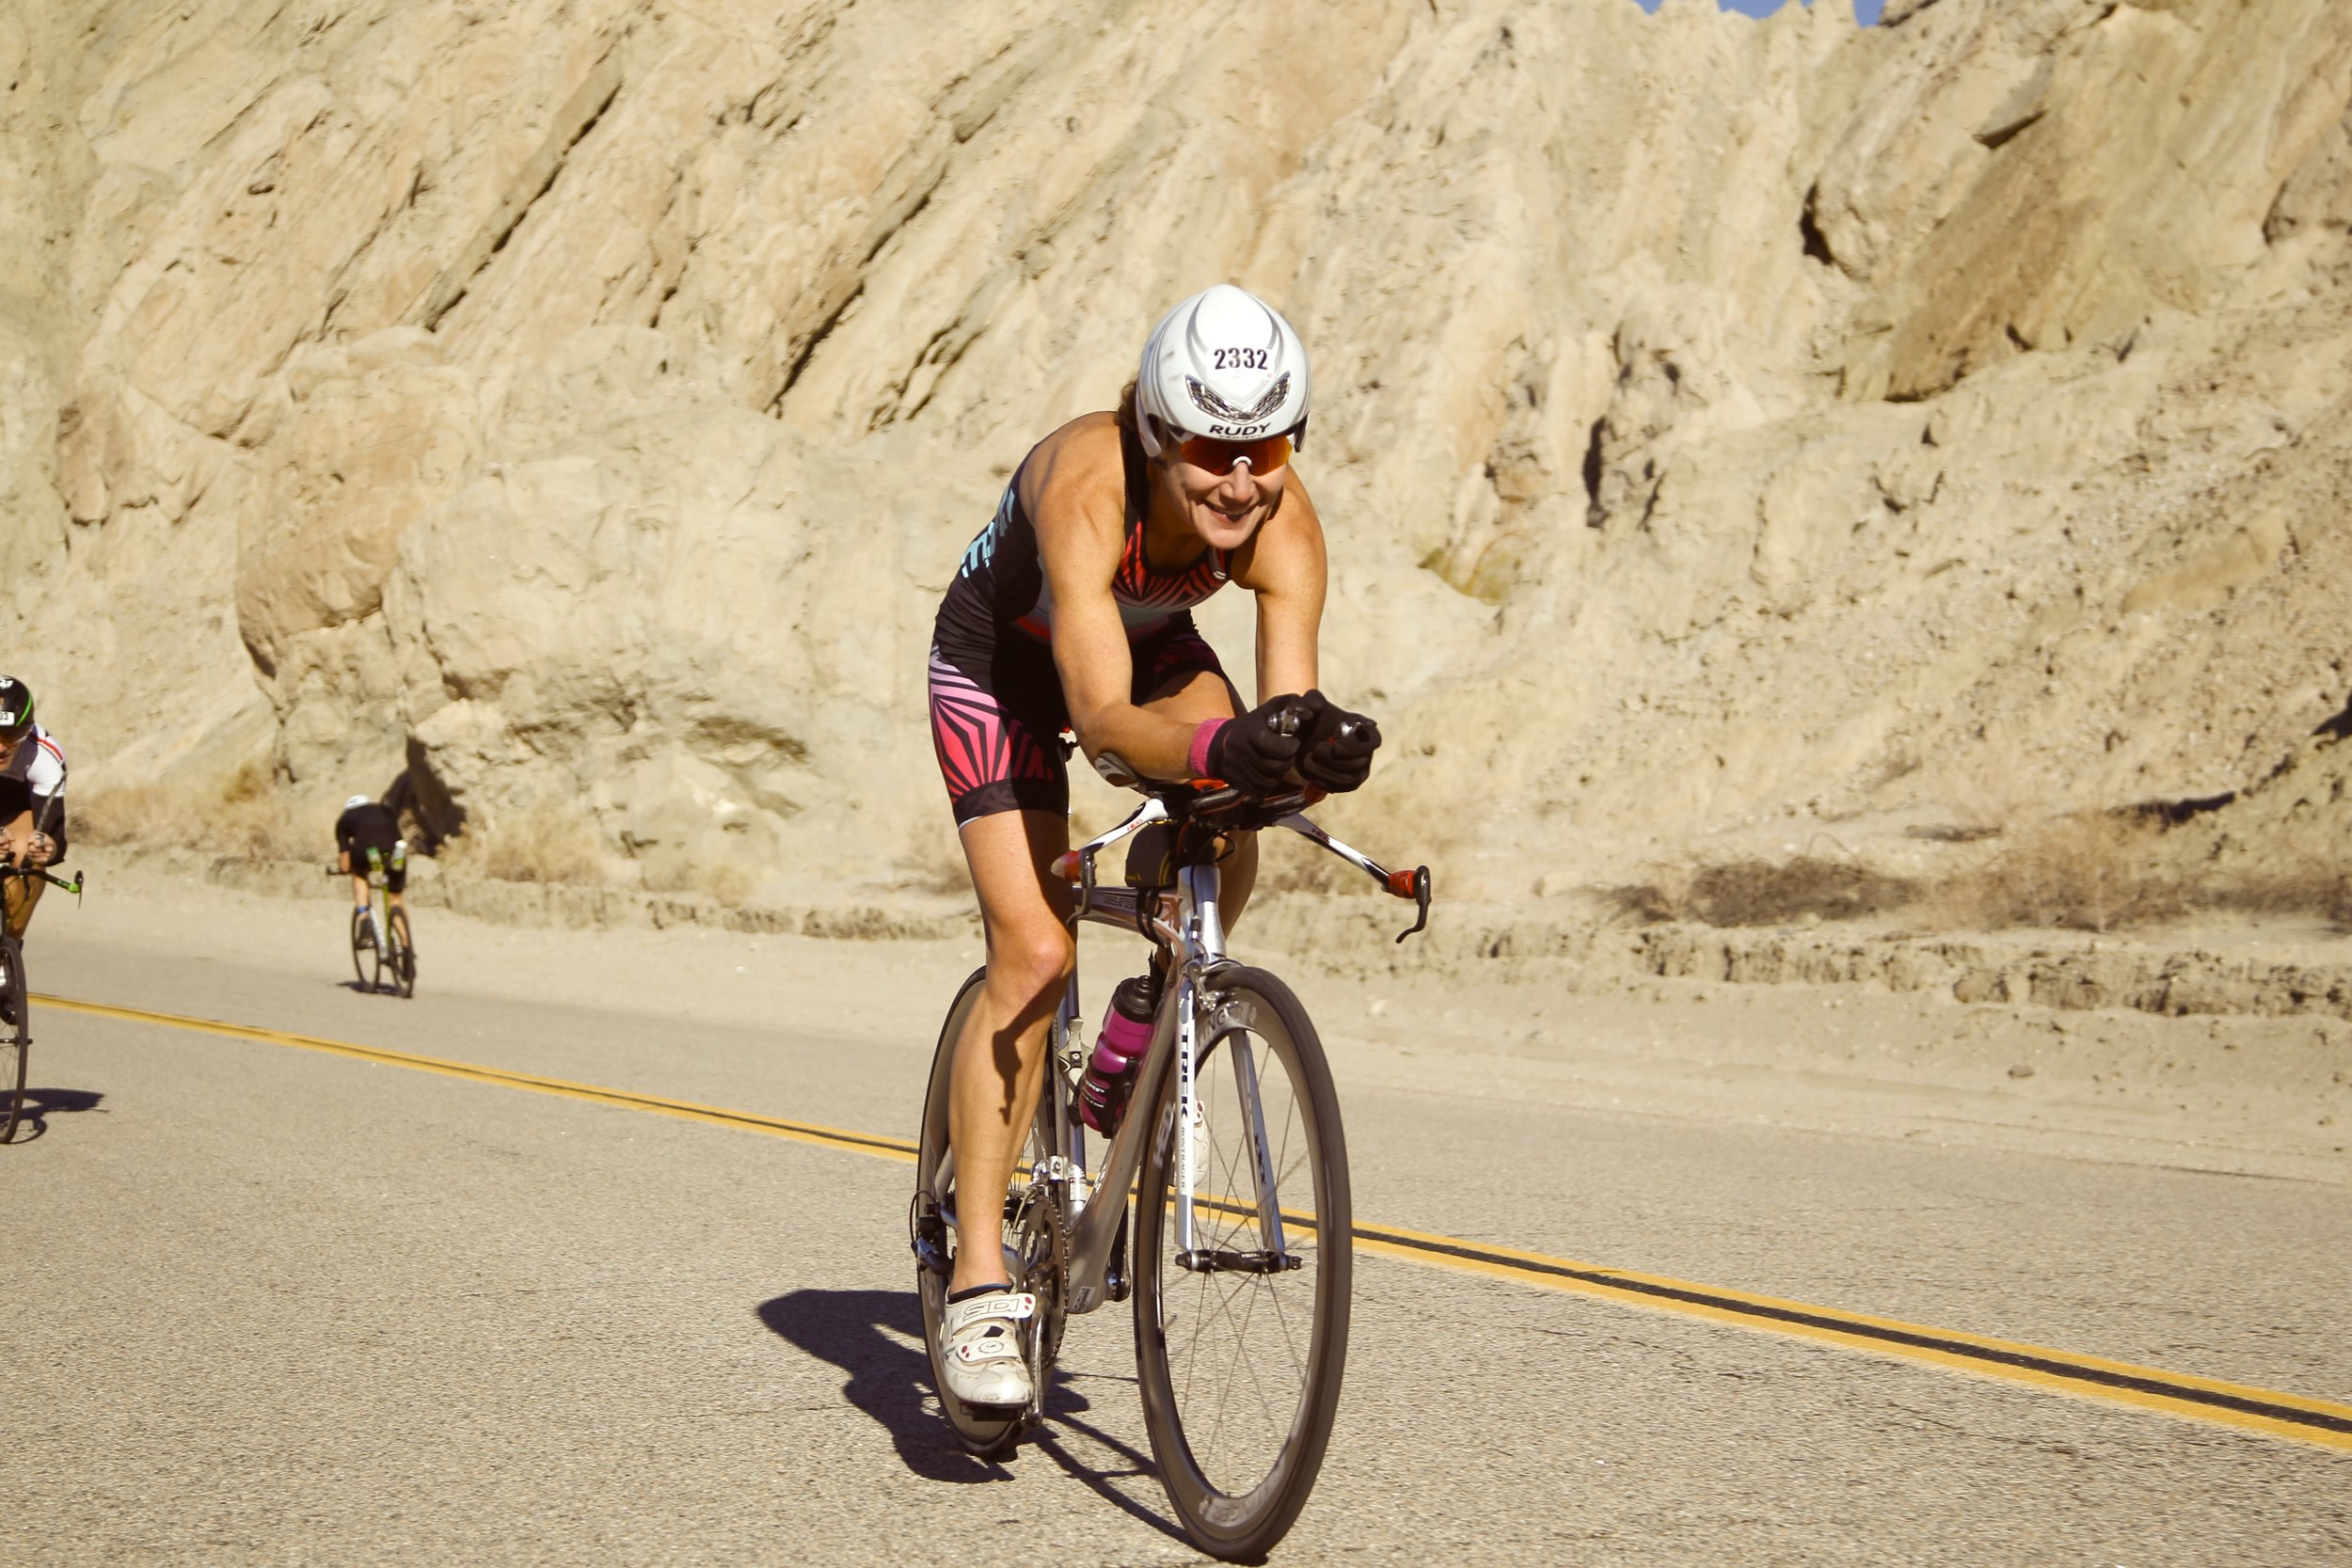 The final race on my Trek, the HITS Half-Ironman this past December.